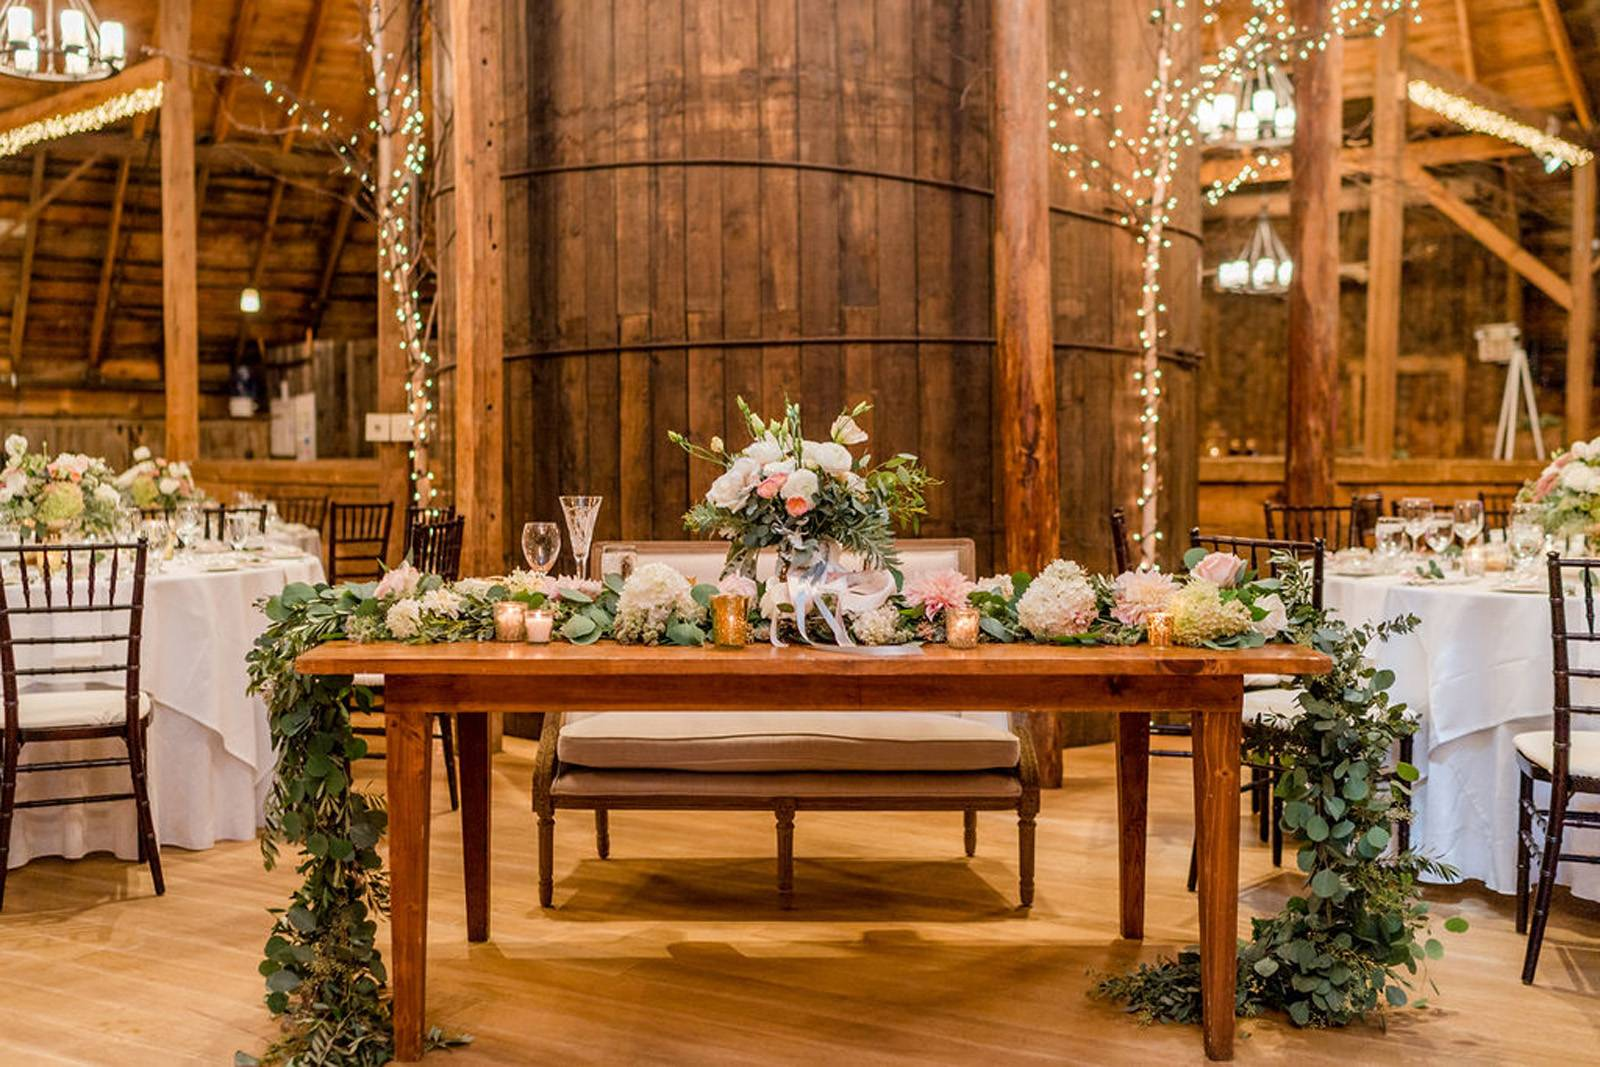 Sweetheart table with floral garland at the Inn at the Round Barn Farm